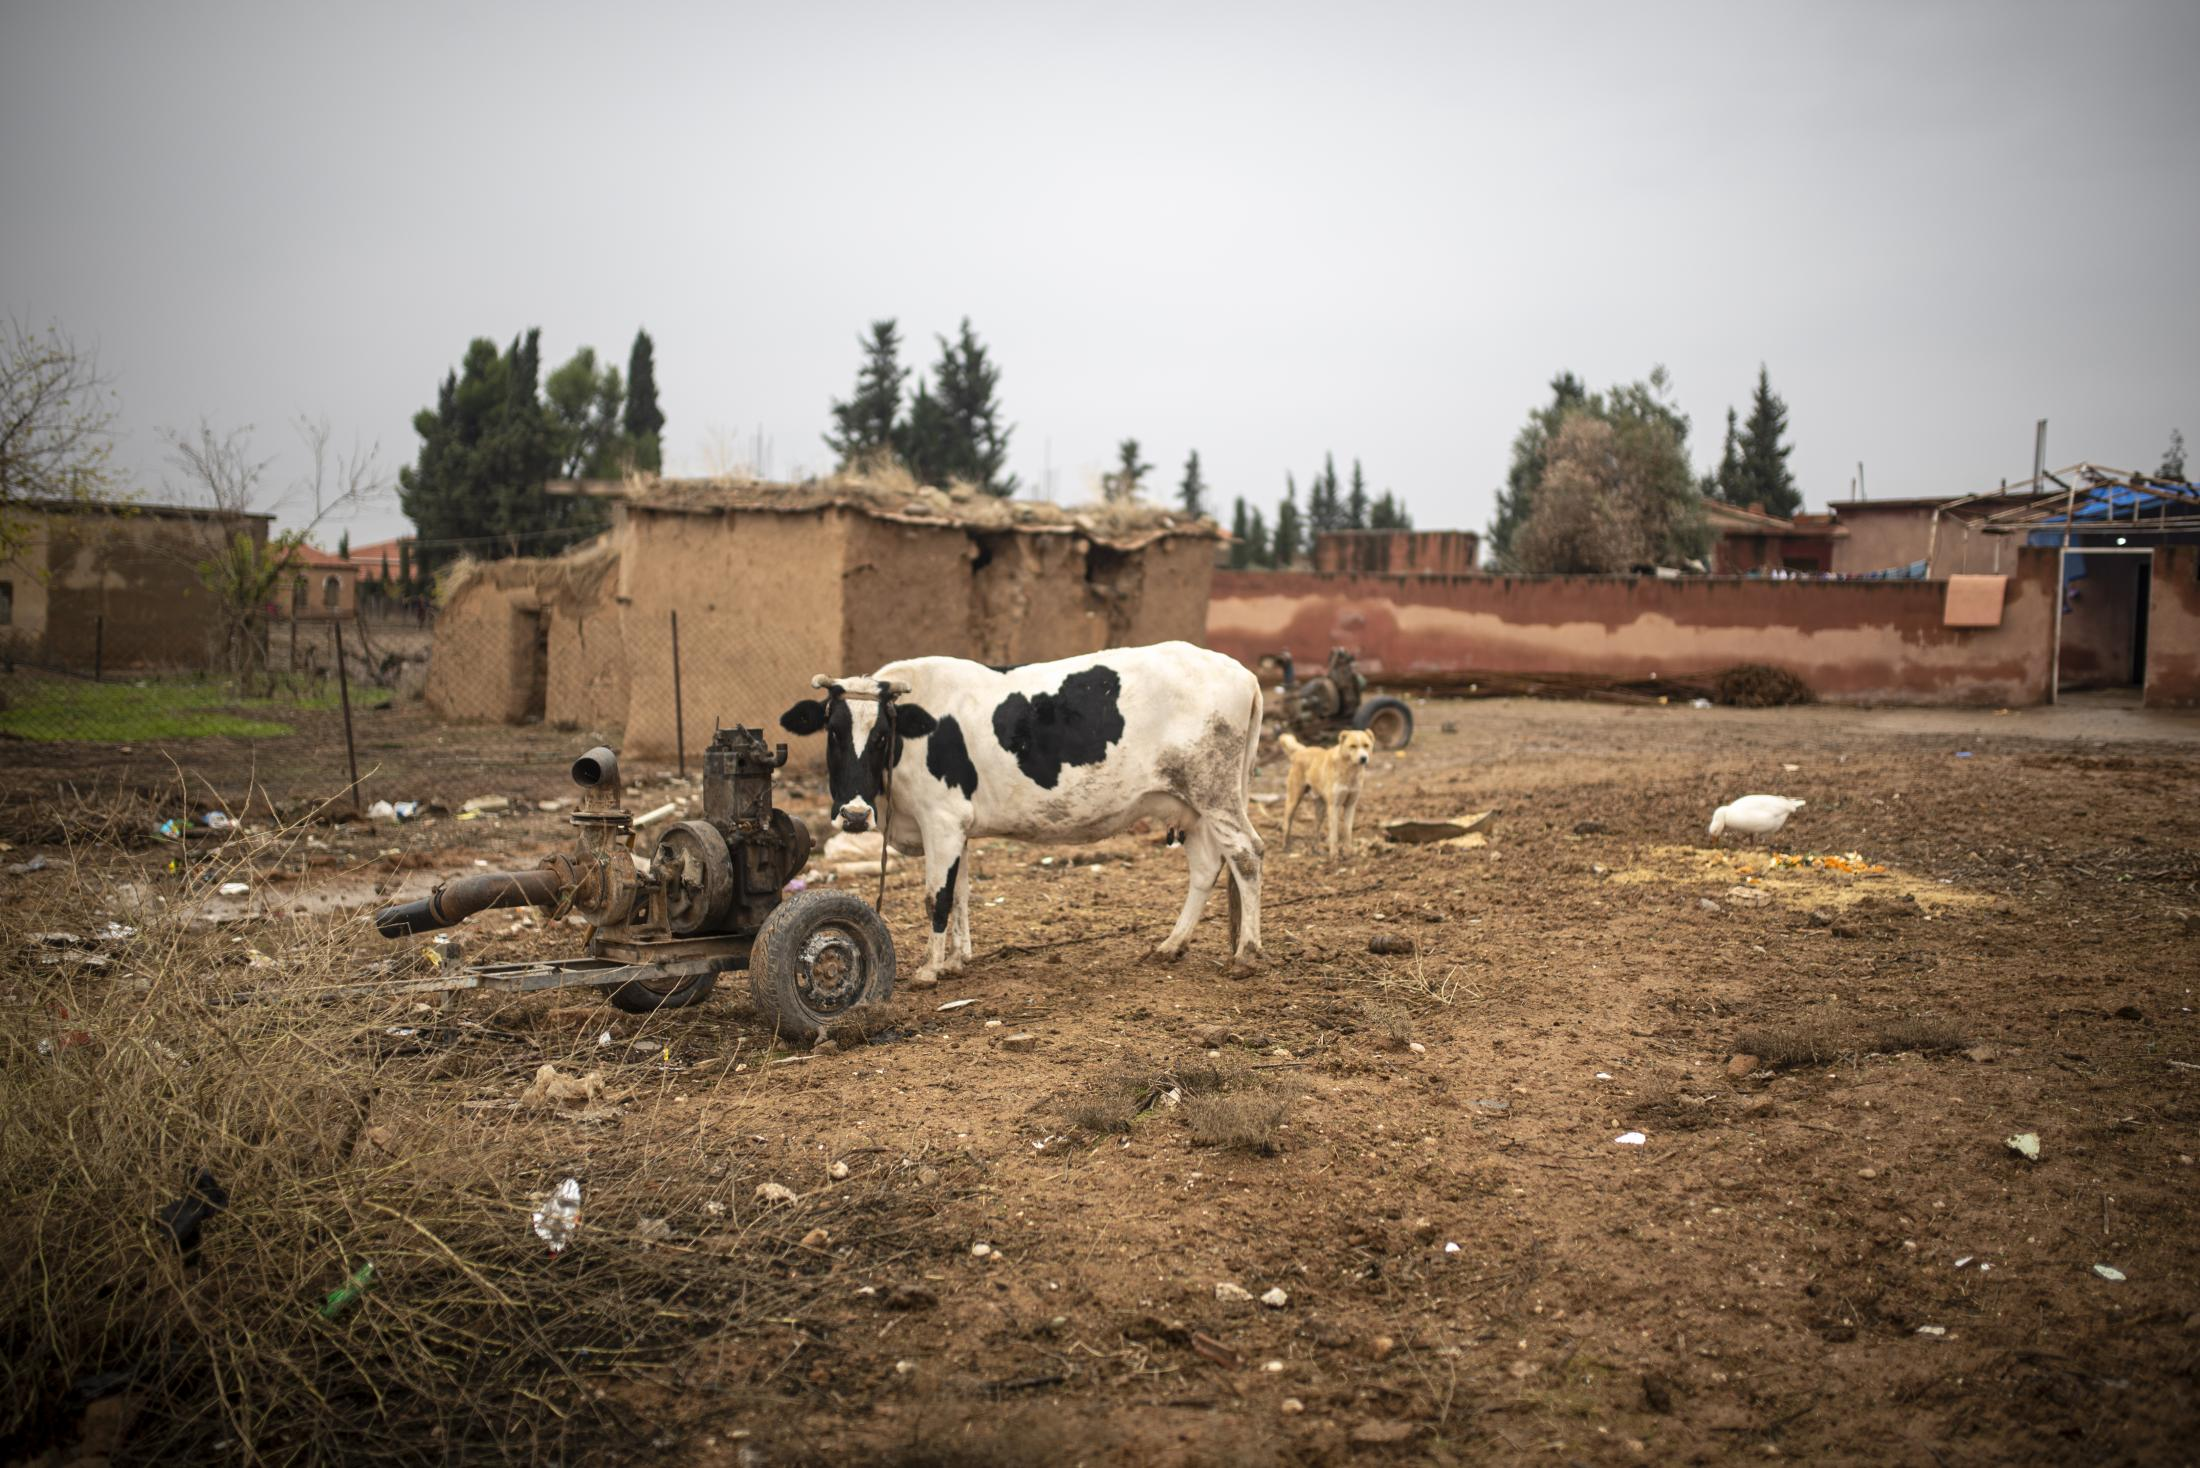 A cow. After the withdrawal of US troops from northern Syria in October 2019, Turkey launched an offensive against the predominantly Kurdish areas in the northeast of the country along Islamist forces. Calls for war crimes investigations into the conduct of Ankara-backed militias are mounting ever since. (Andoni Lubaki / Euskal Fondoa)